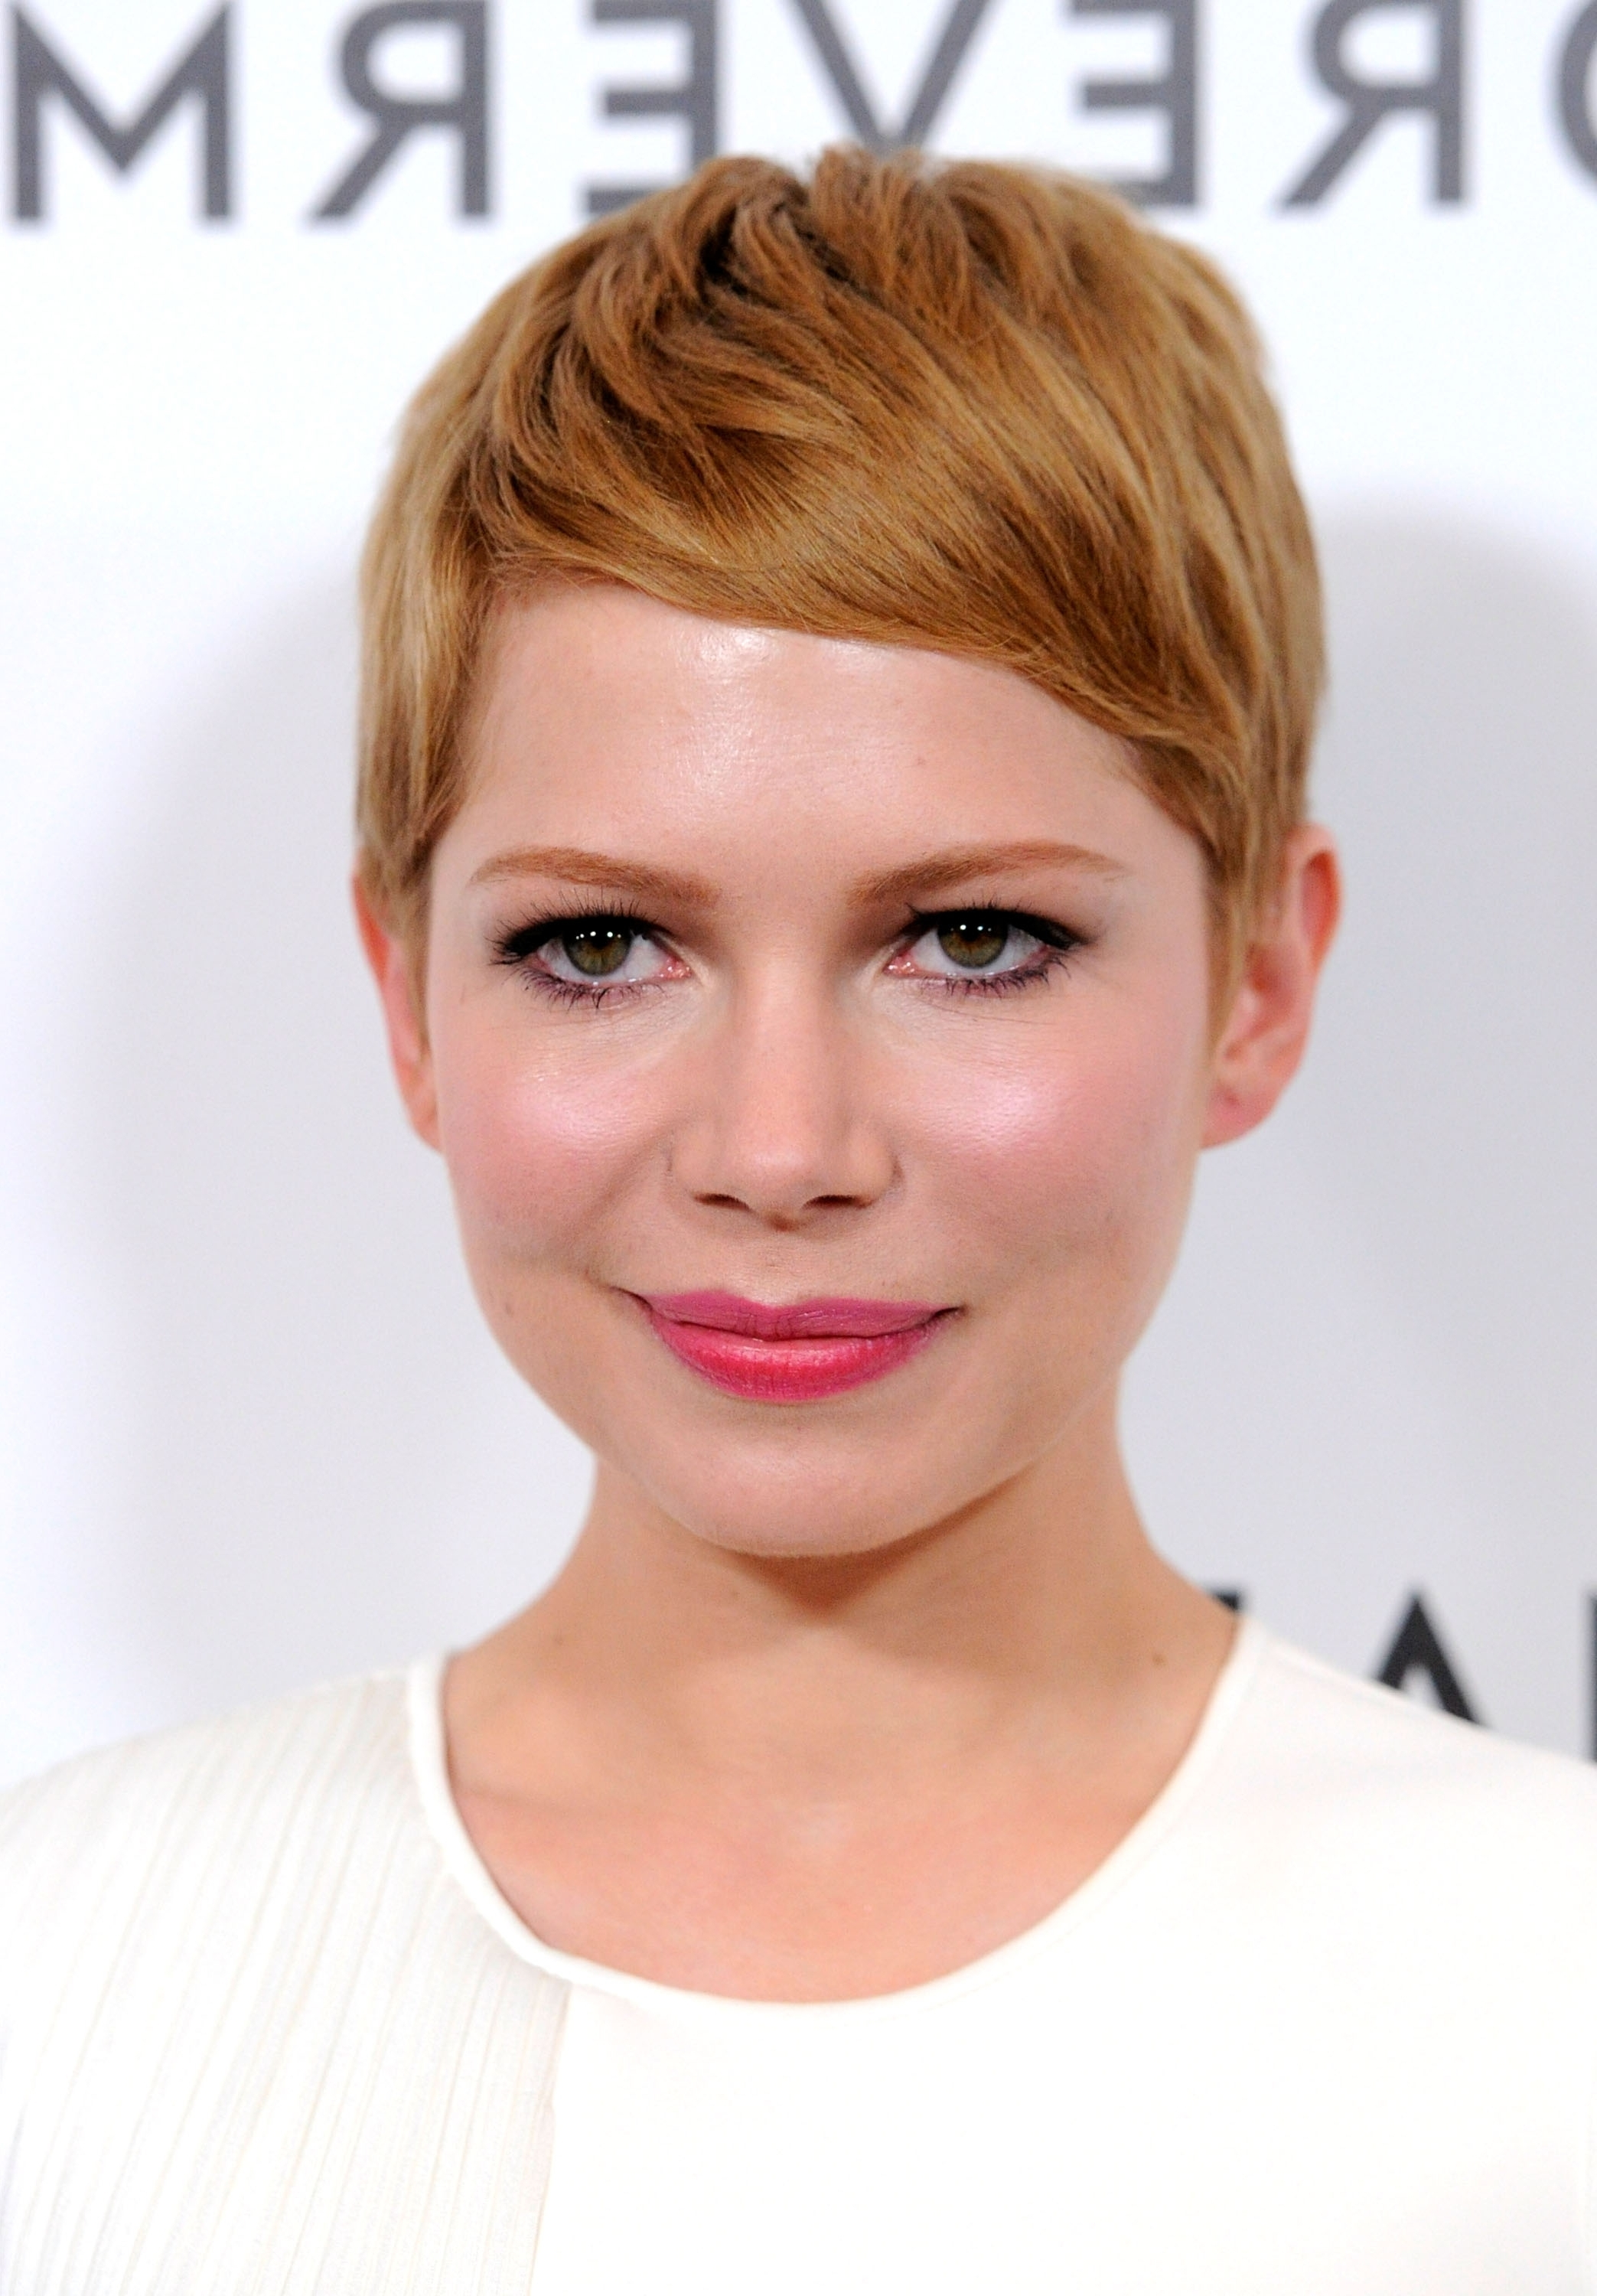 40 Best Short Pixie Cut Hairstyles 2018 – Cute Pixie Haircuts For Inside Most Current Pixie Hairstyles For Girls (View 6 of 15)